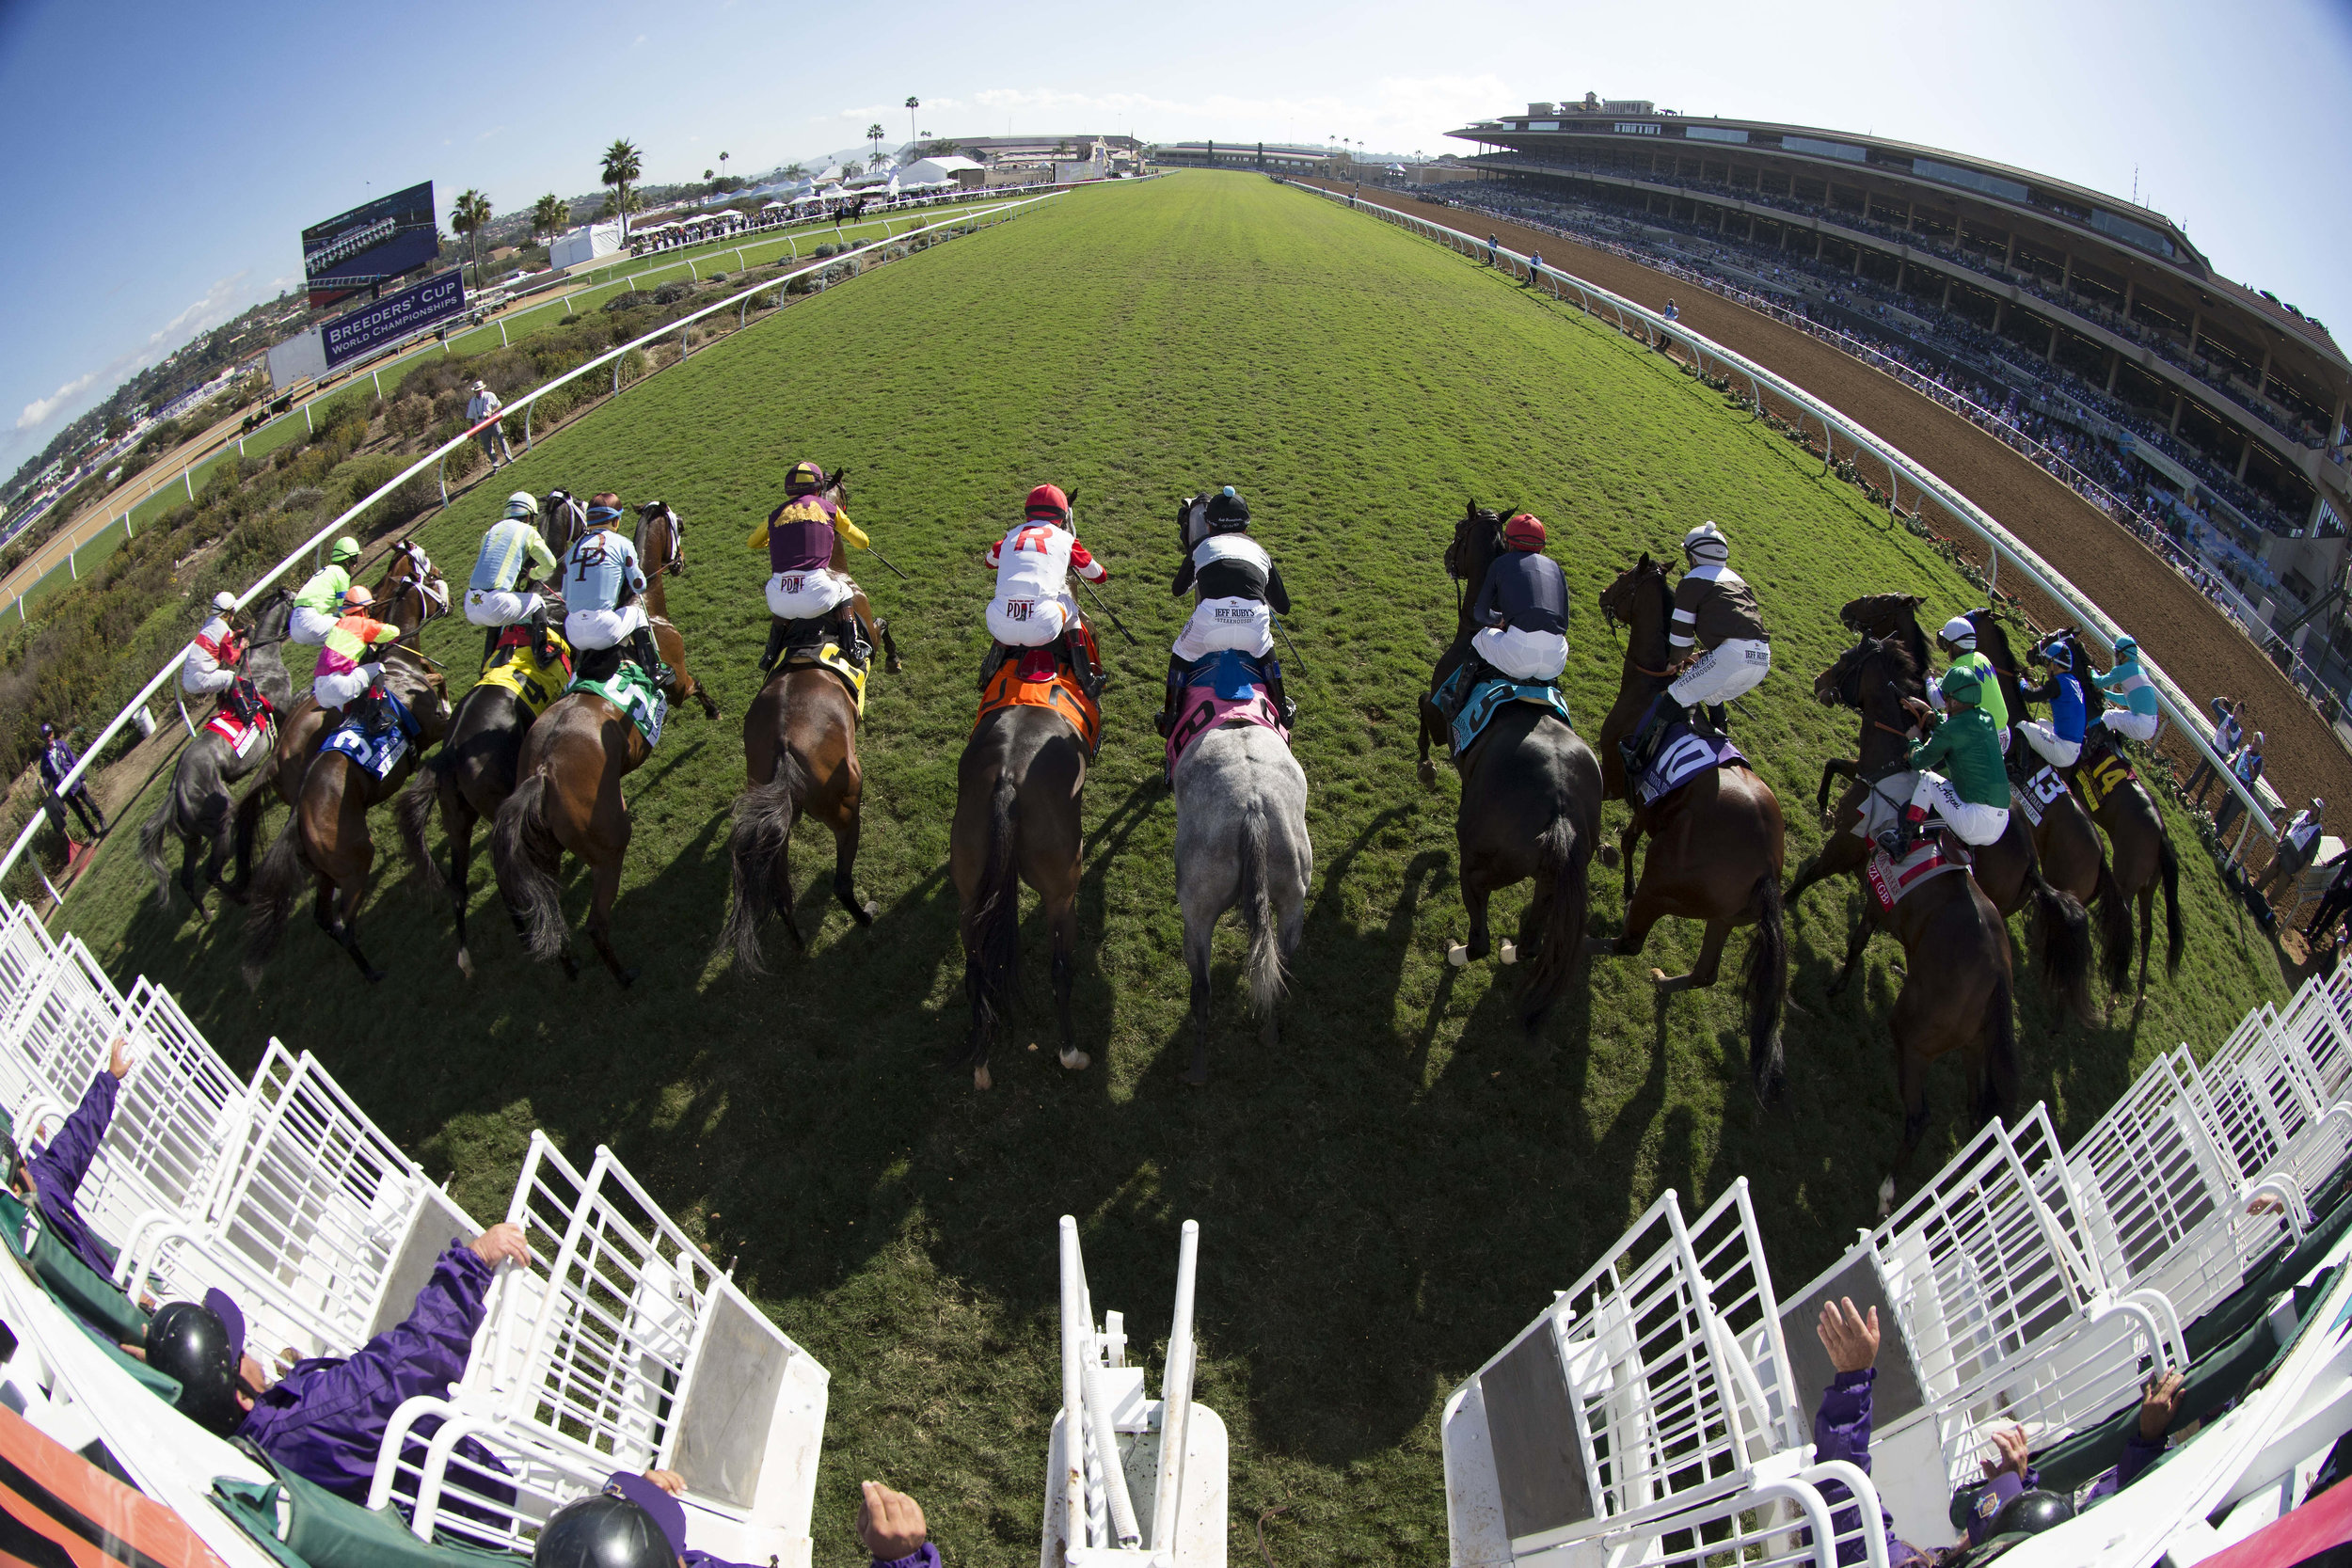 DEL MAR, CA - NOVEMBER 04: Horses start the Goldikova Stakes on Day 2 of the 2017 Breeders' Cup World Championships at Del Mar Racing Club on November 4, 2017 in Del Mar, California. (Photo by Michael McInally/Eclipse Sportswire/Breeders Cup/